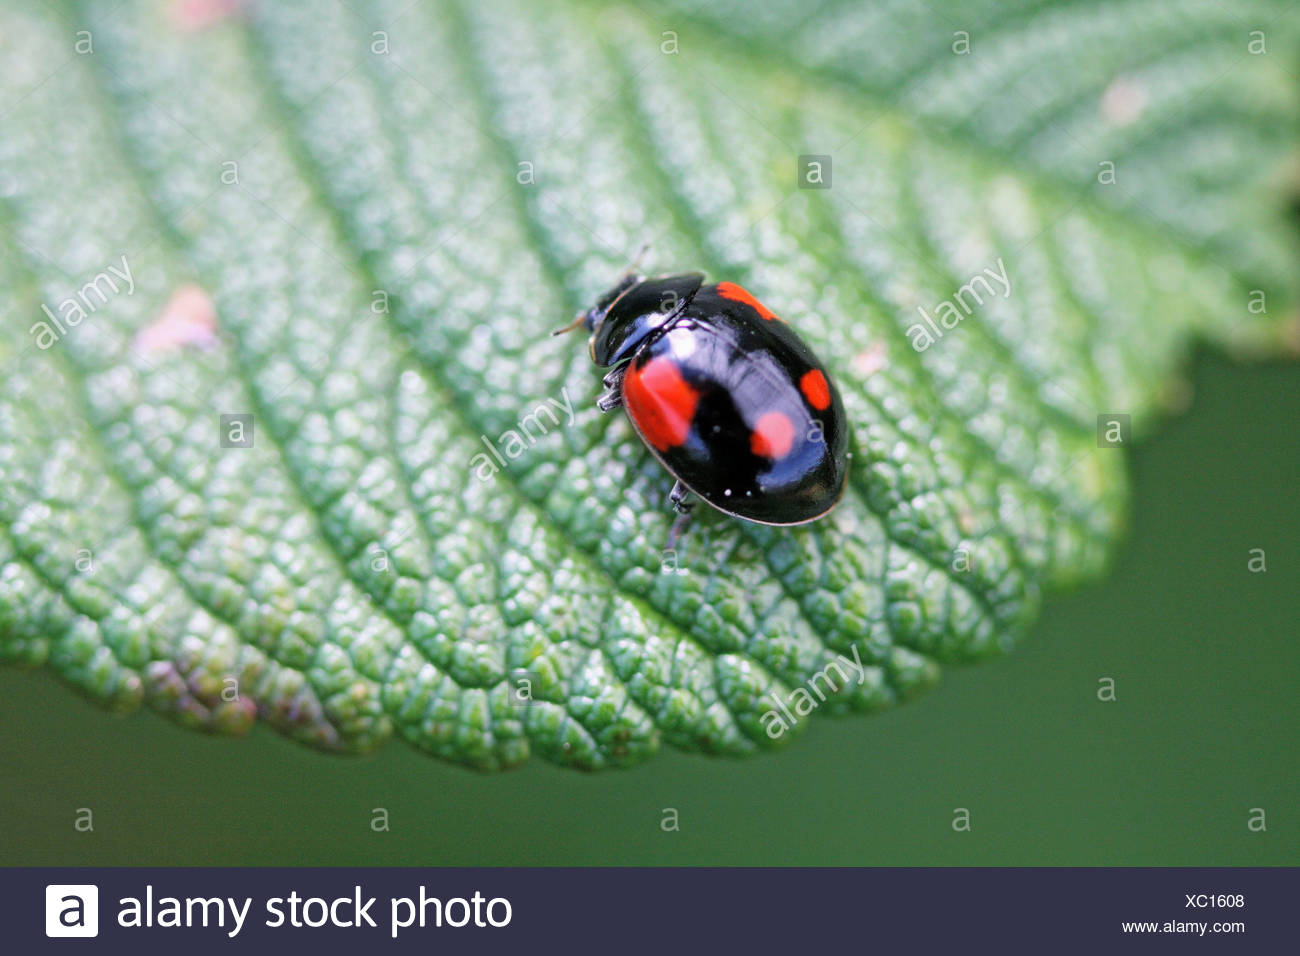 Two-spot Ladybird Beetle, Adalia bipunctata v sexpustulata, Black variant of Two-spotted ladybird esily confused with the black - Stock Image